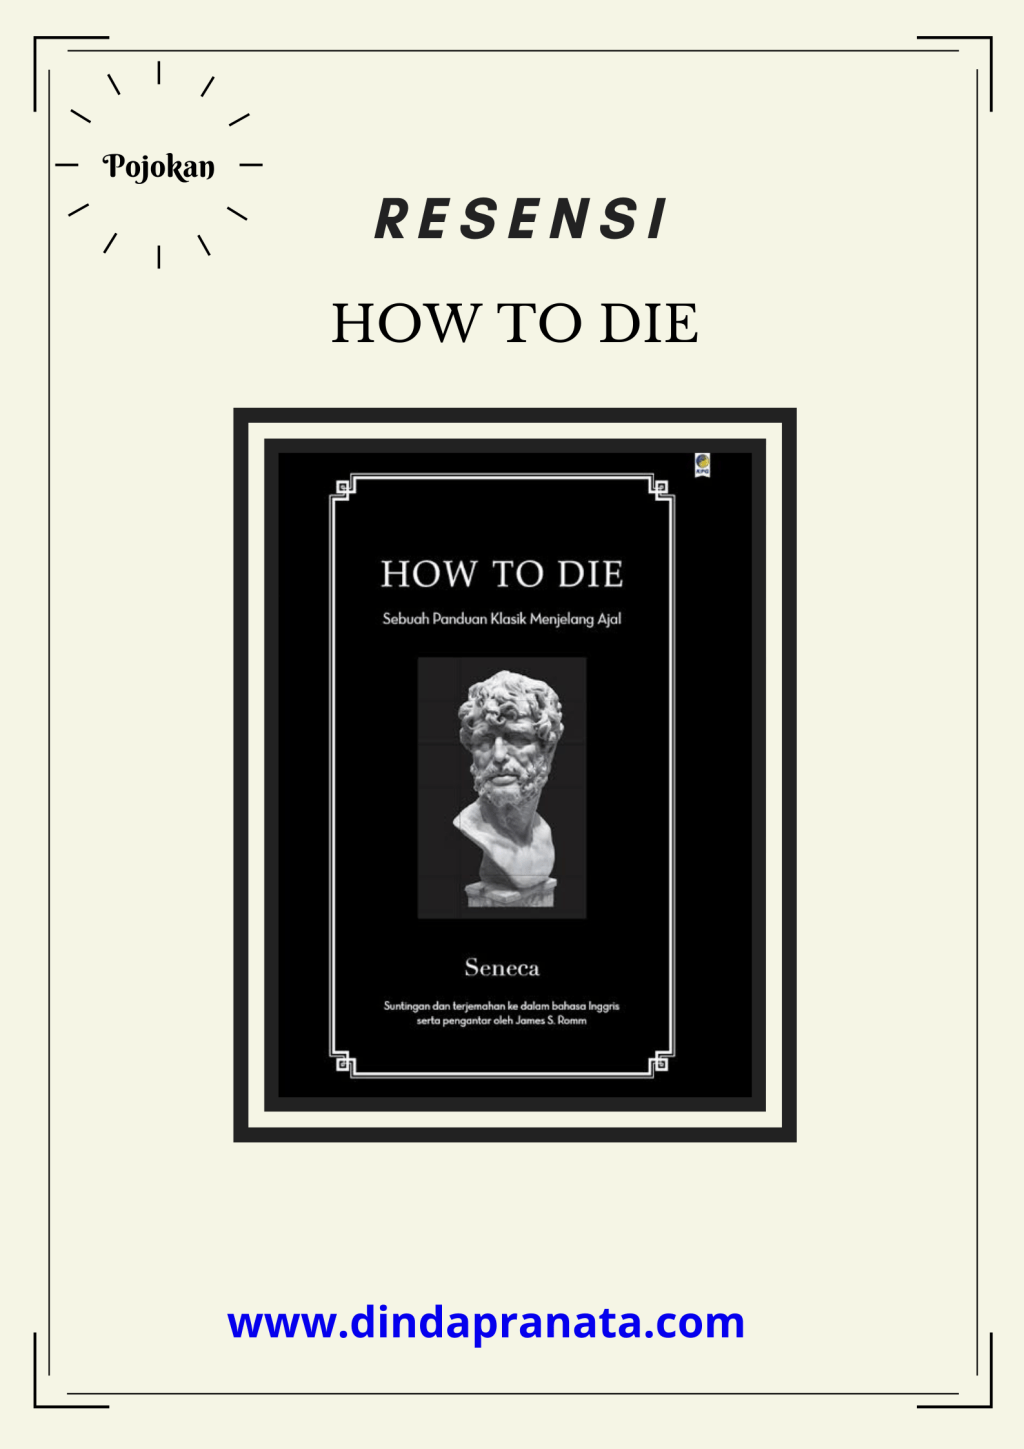 Resensi How To Die